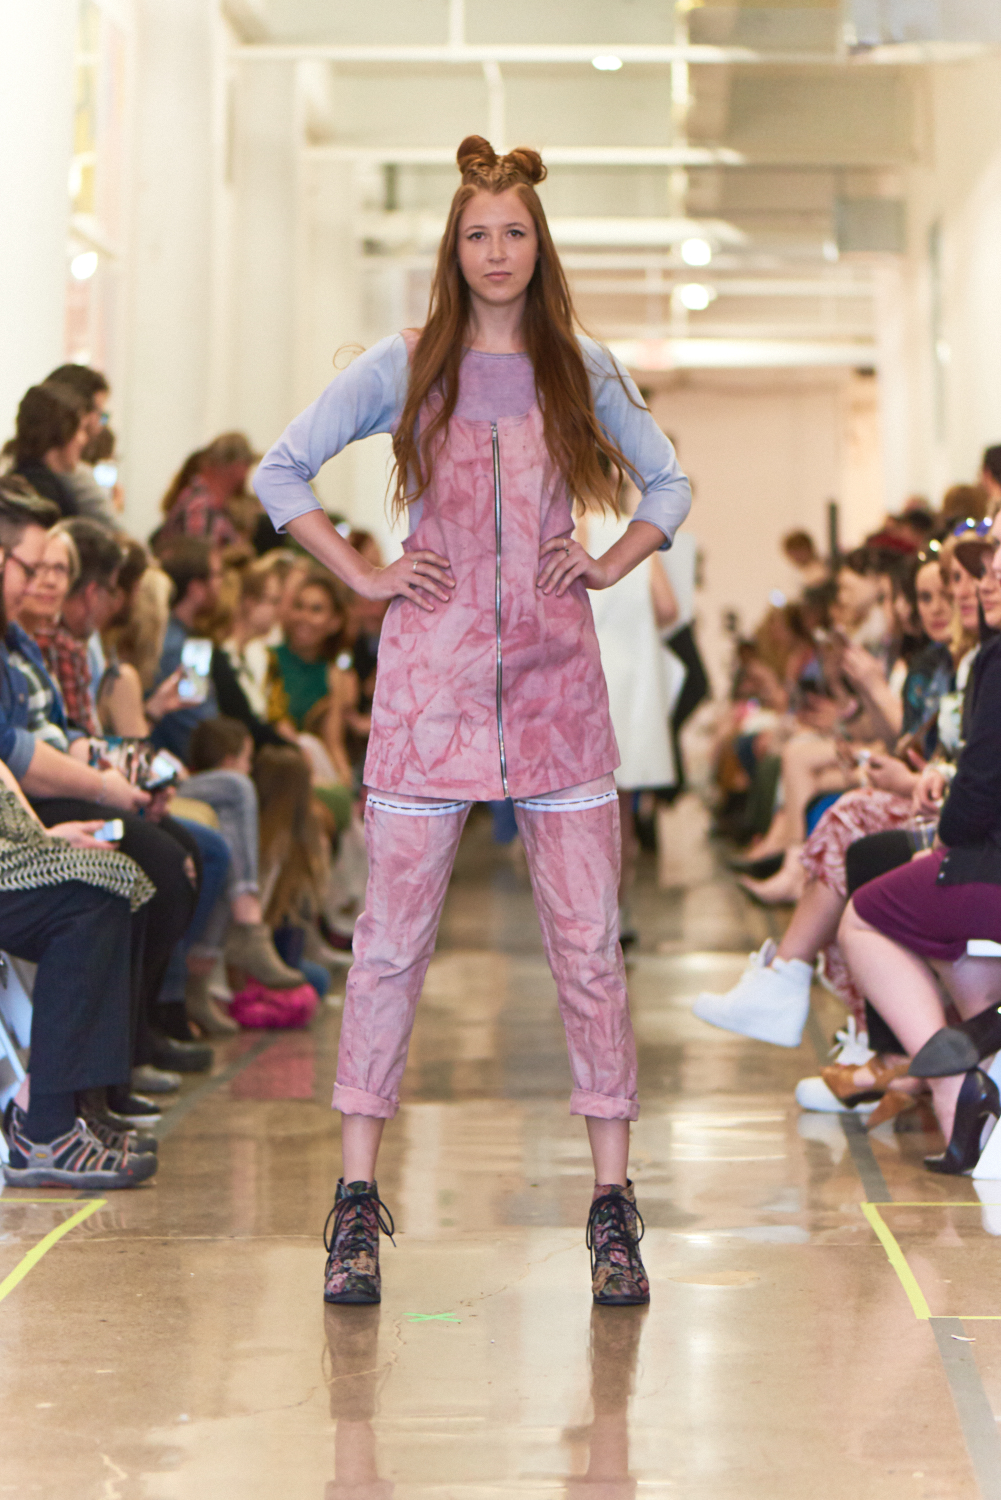 Look 12:Emily Laurich